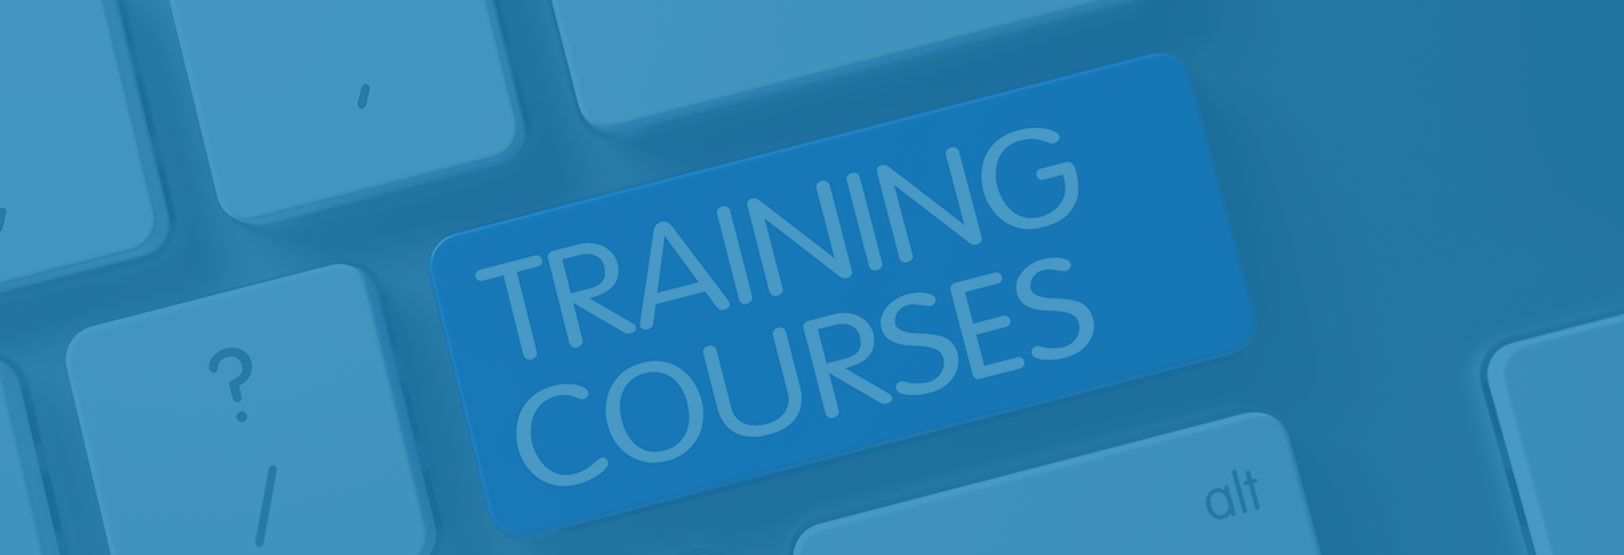 UK Wide Courses & Training Solutions